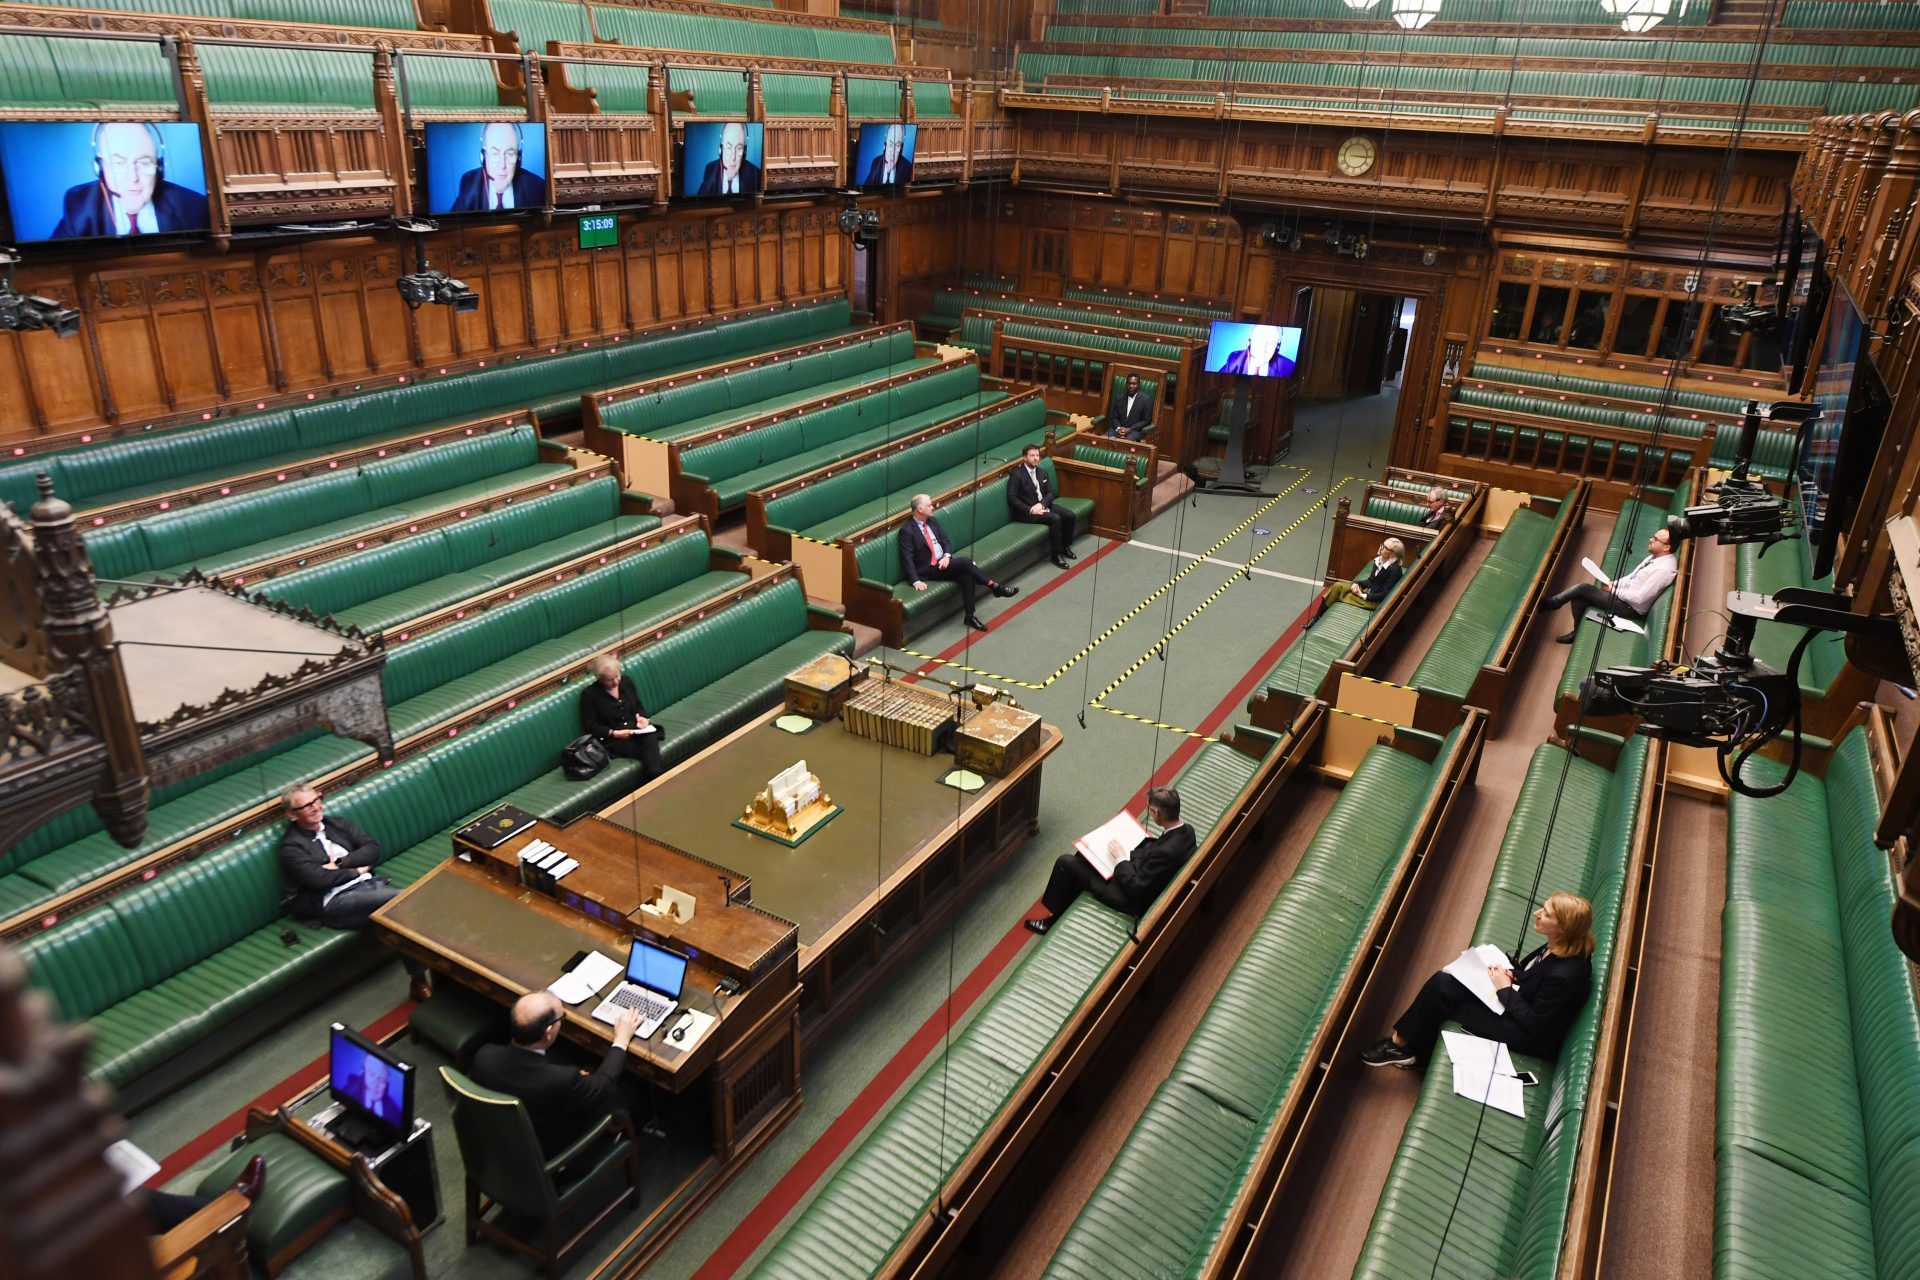 MPs remotely attend the House of Commons in a 'virtual parliament'